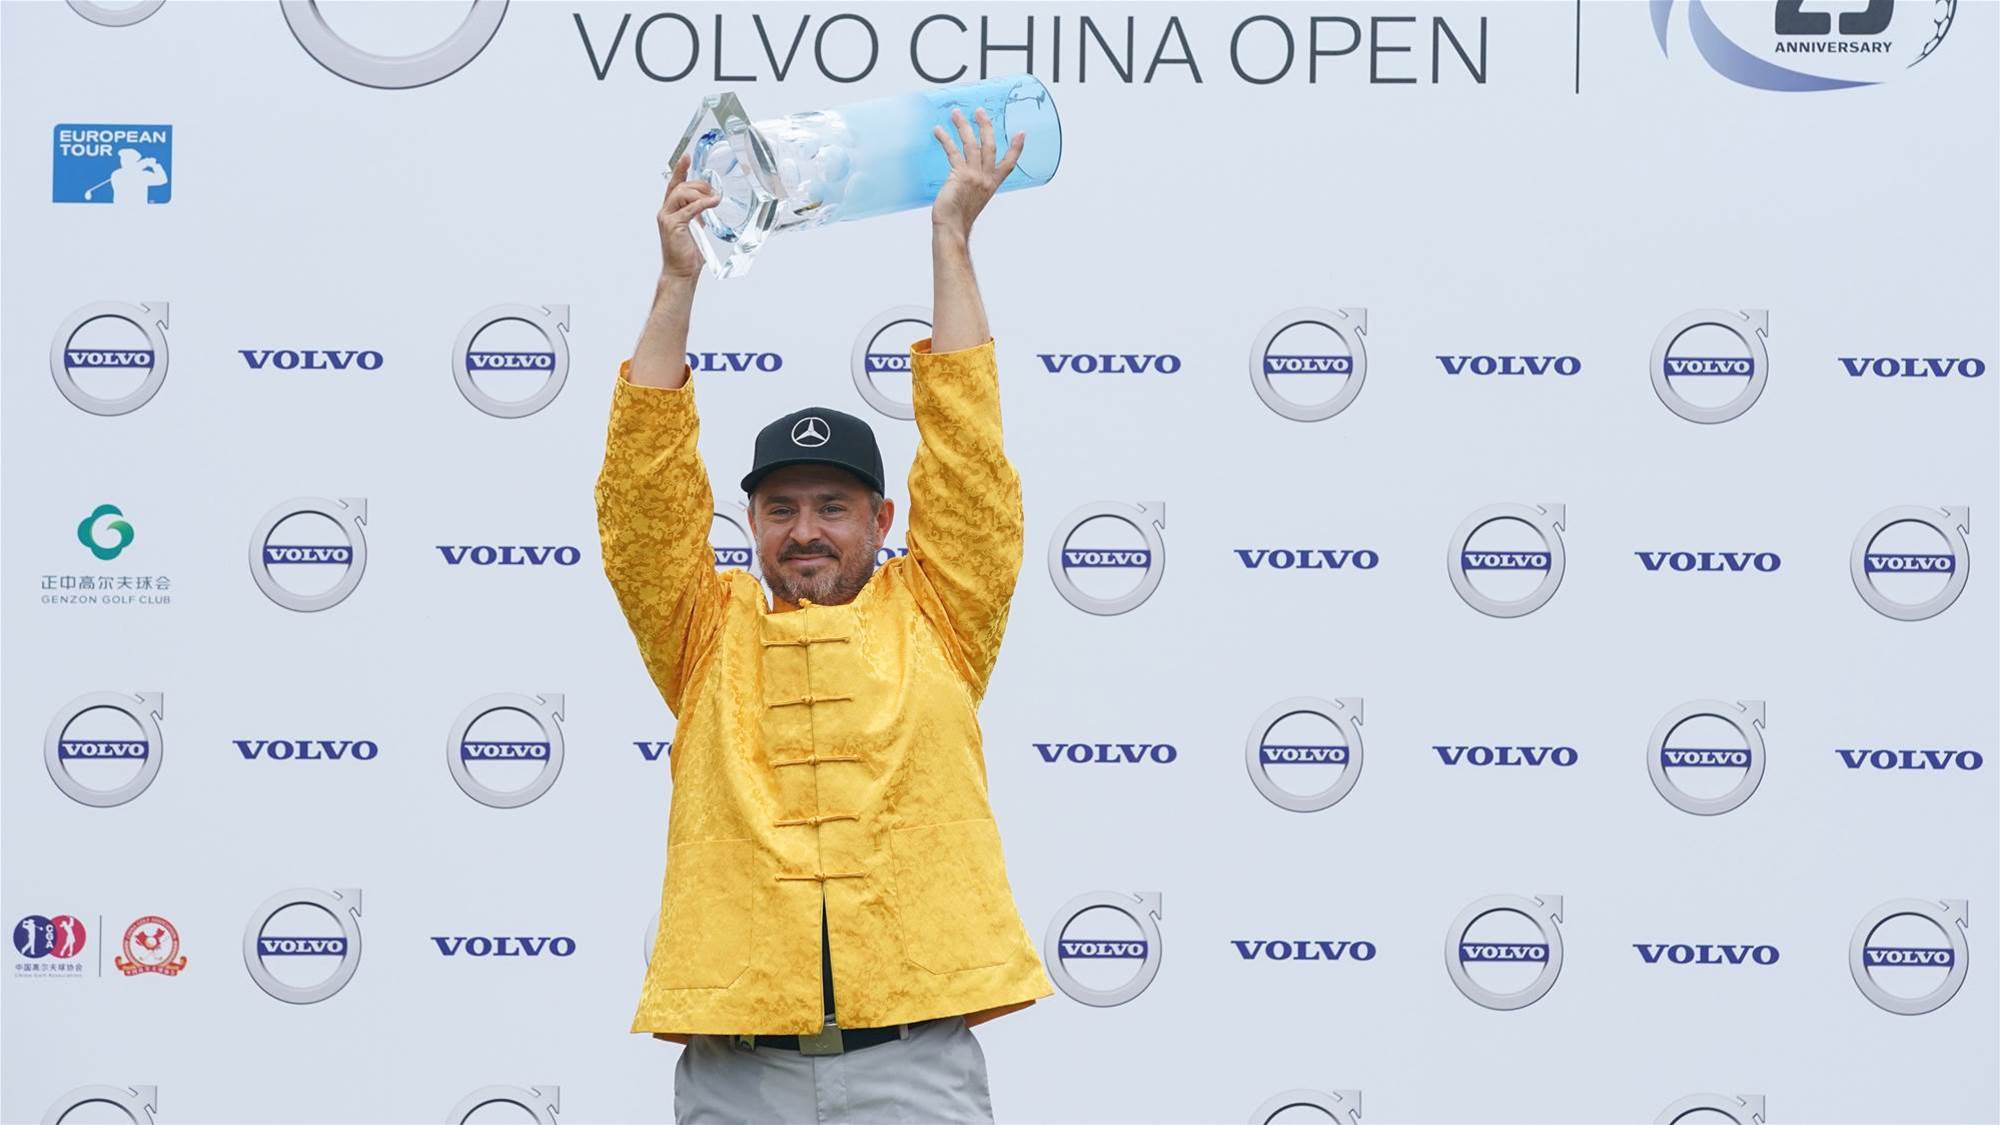 China Open: Mikko Korhonen prevails in playoff